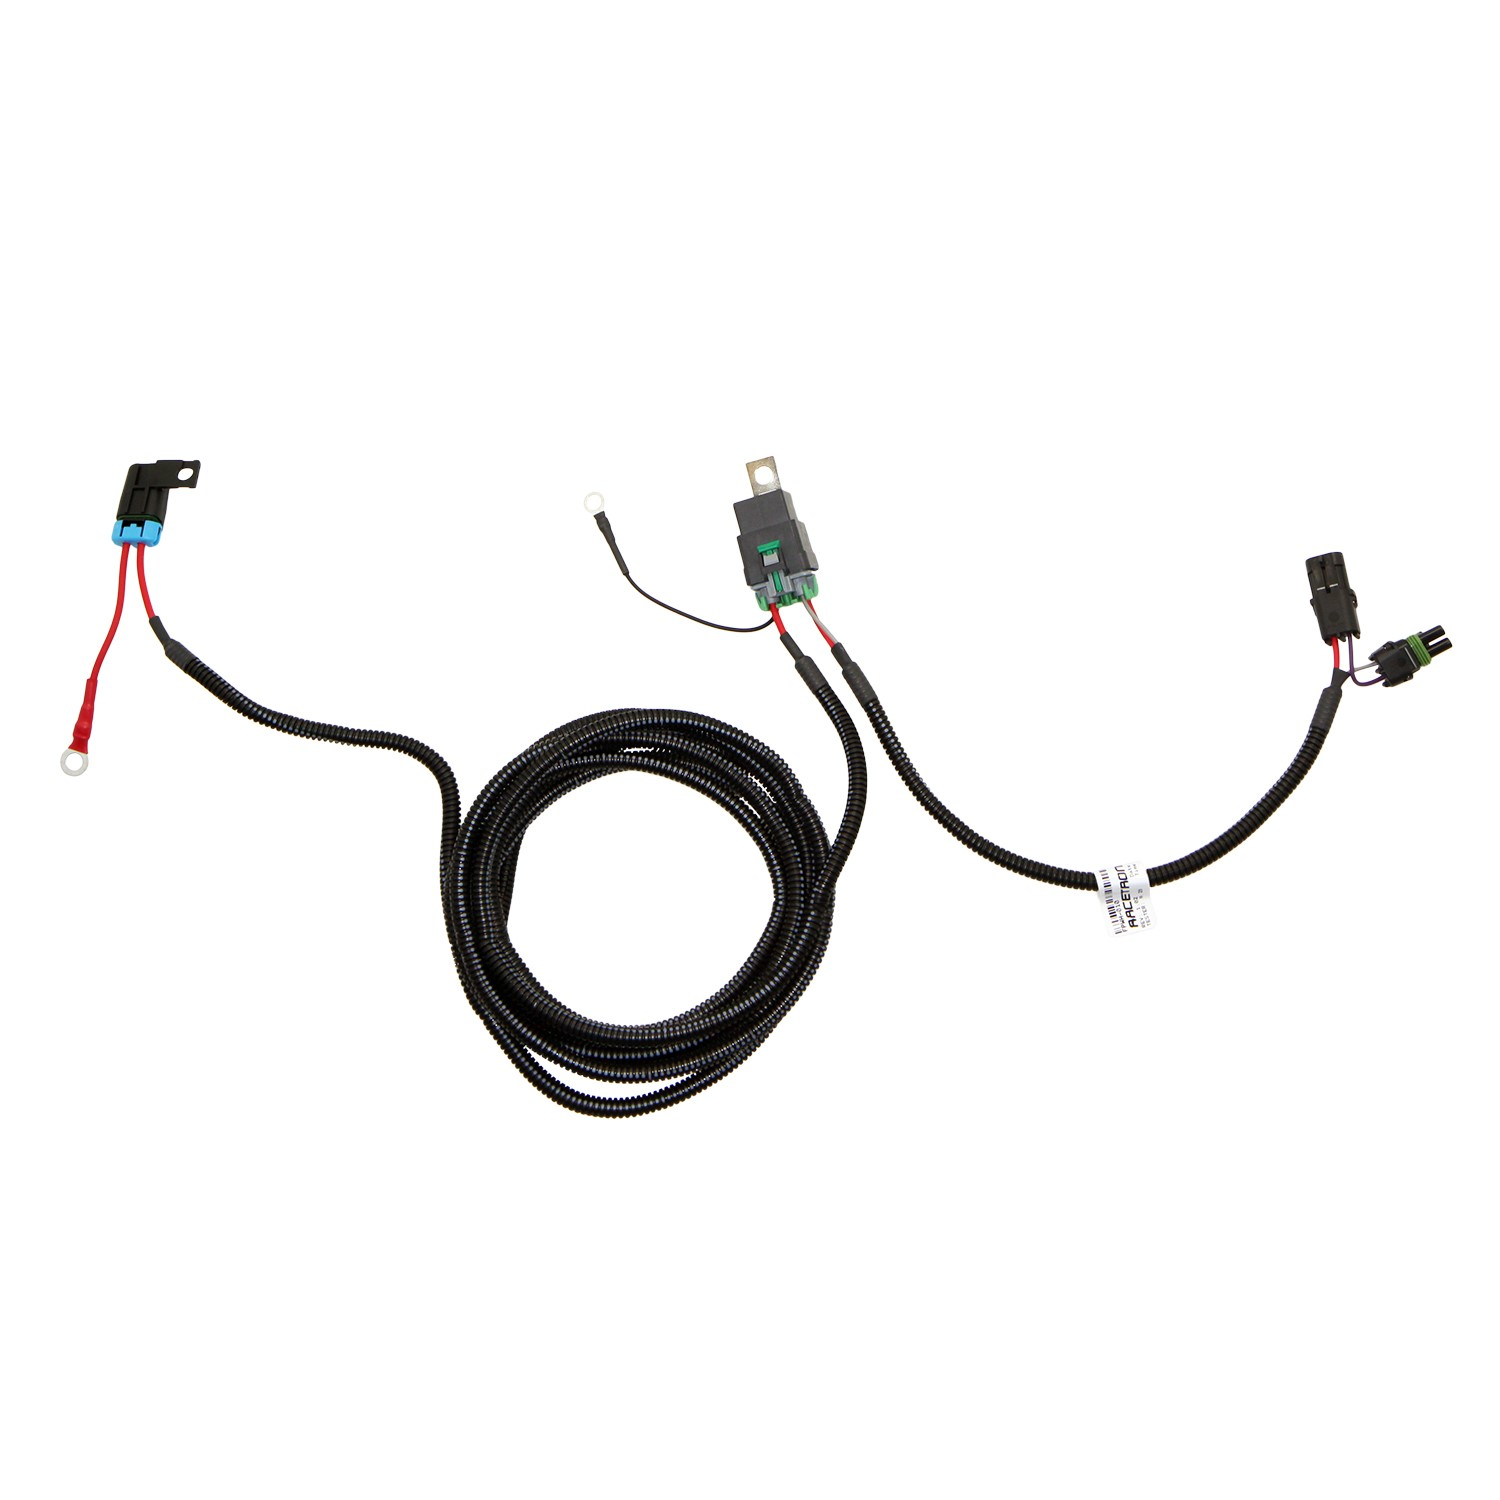 sy fuel pump wiring harness  fpwh-010   fuel pump   upgrade harnesses